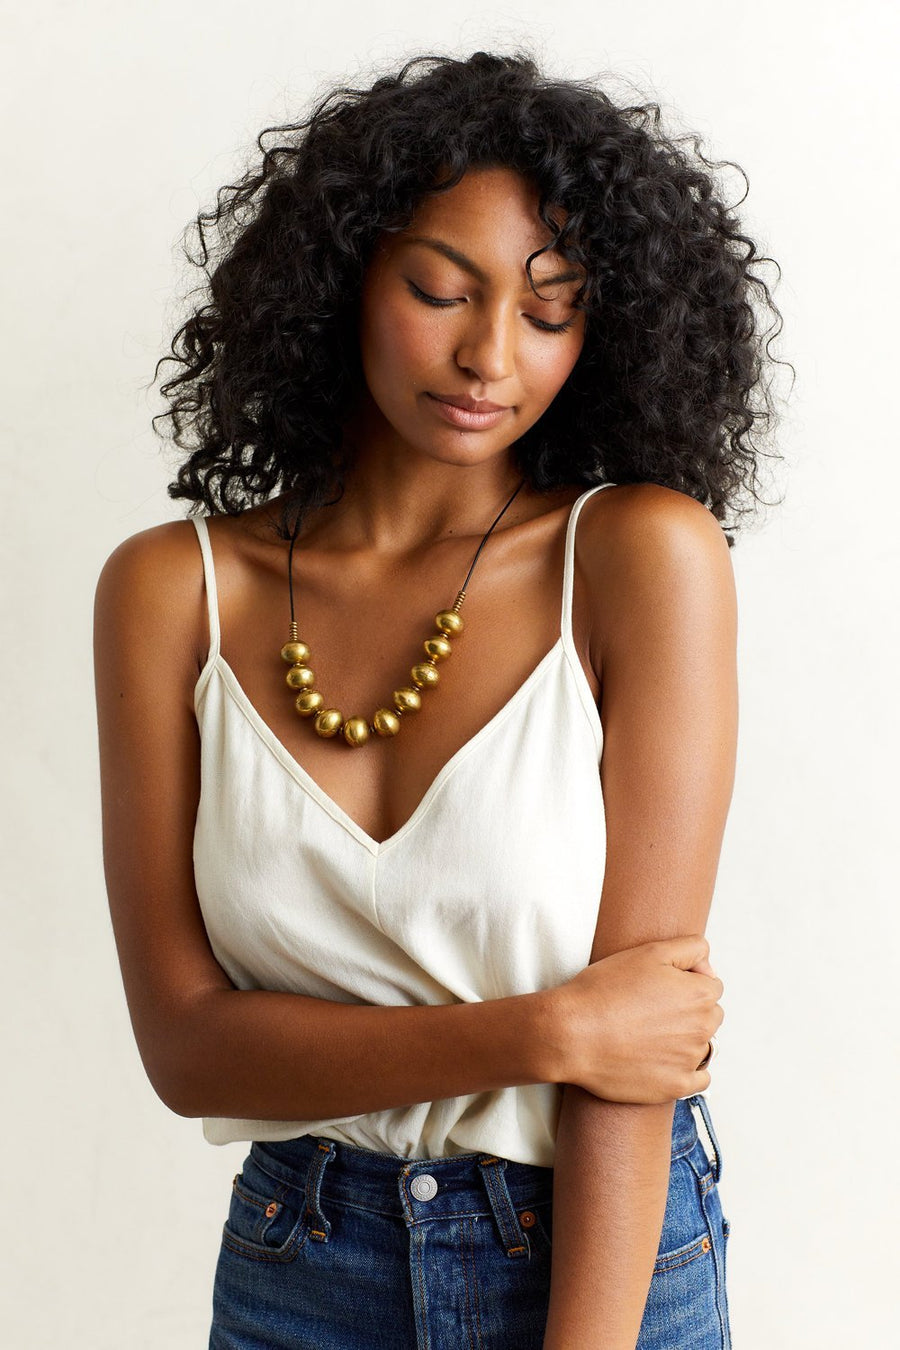 NERO Necklaces Black,Tan Marisa Mason Jewelry